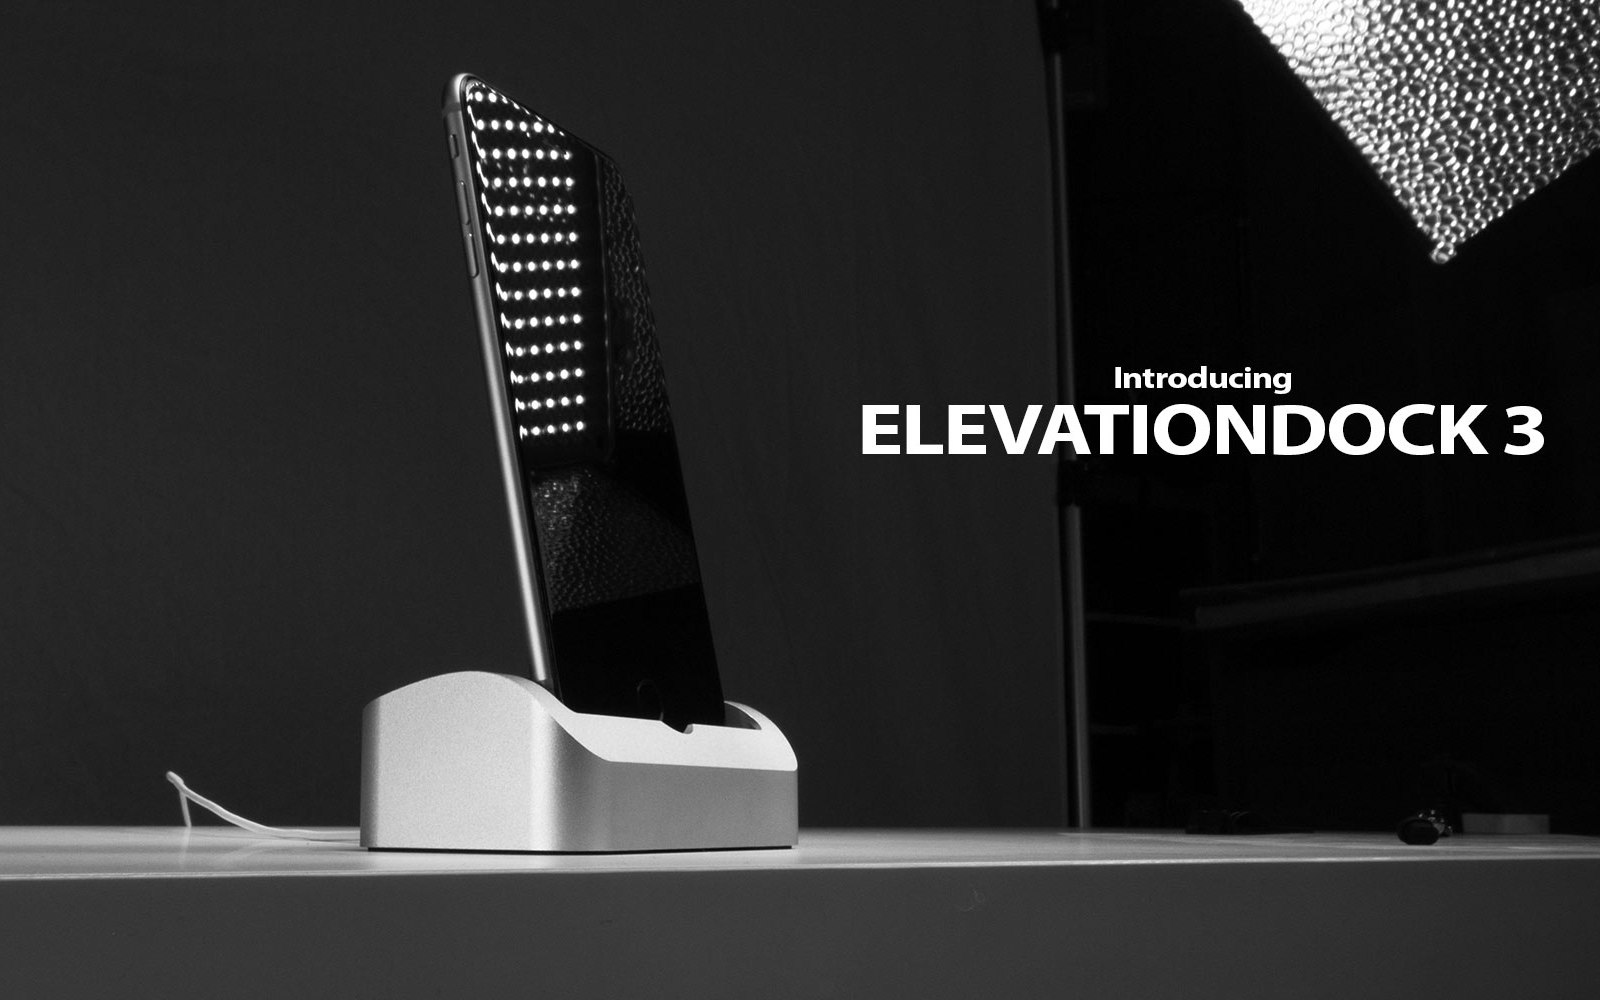 ElevationLab's aluminum dock gets updated with iPhone 6 Plus support